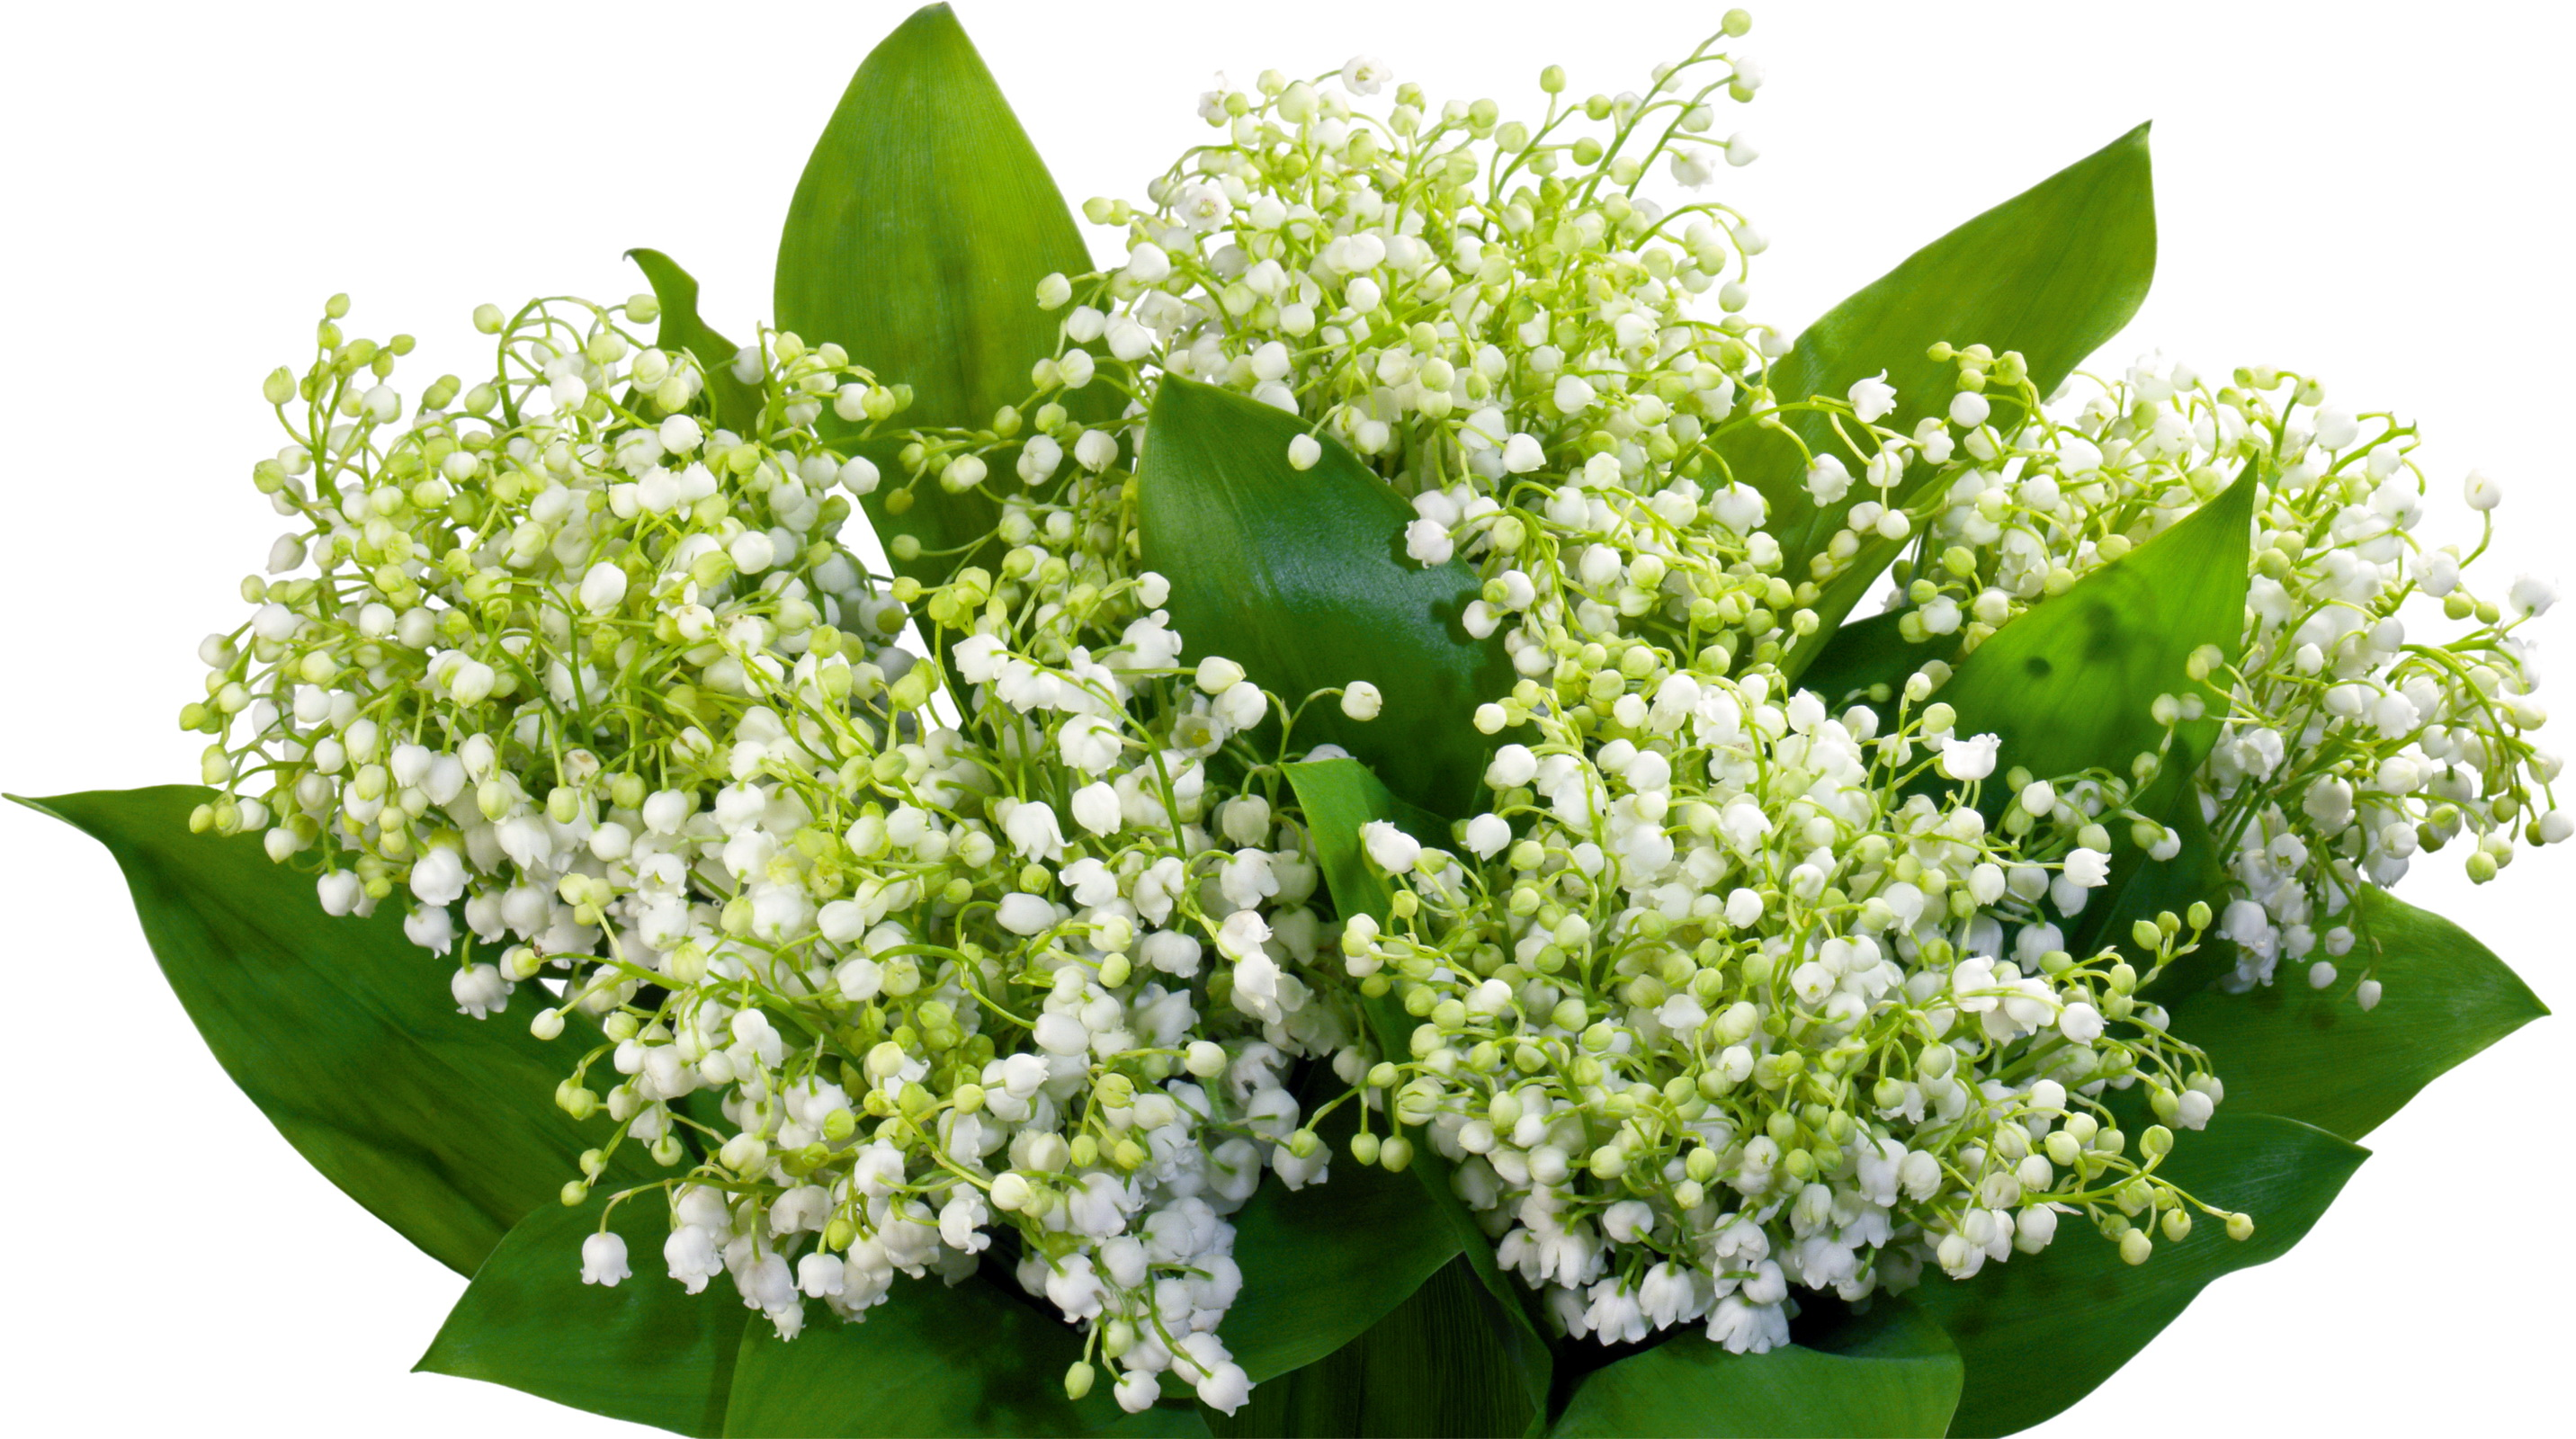 fonds d 39 ecran 2864x1600 muguet de mai fleurs t l charger photo. Black Bedroom Furniture Sets. Home Design Ideas